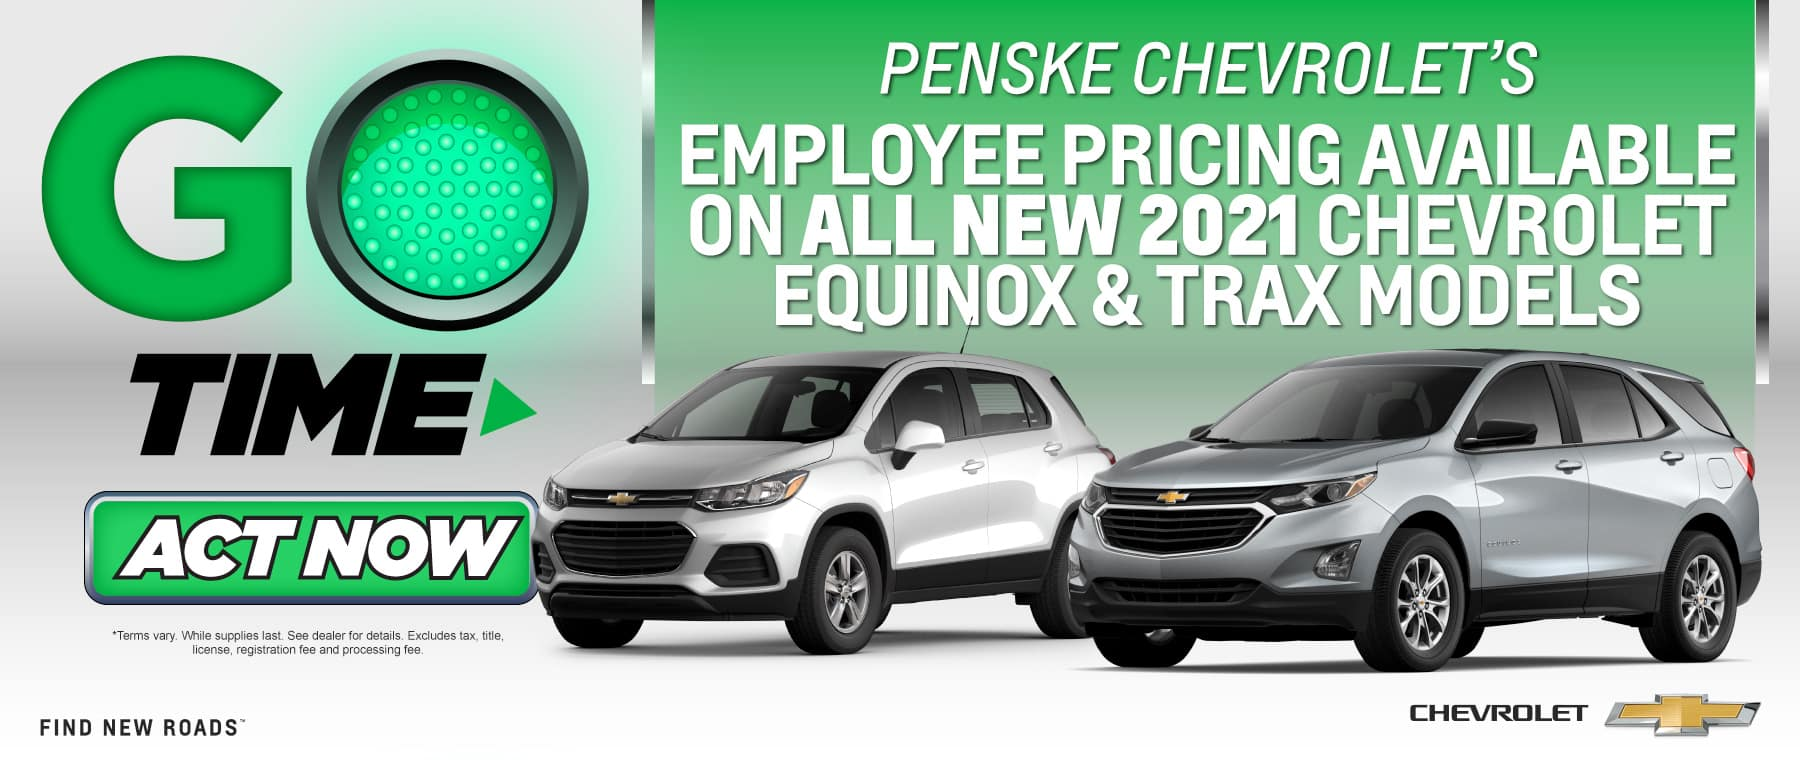 Employee Pricing Available on all new 2021 Chevy Equinox and Trax models - Act Now